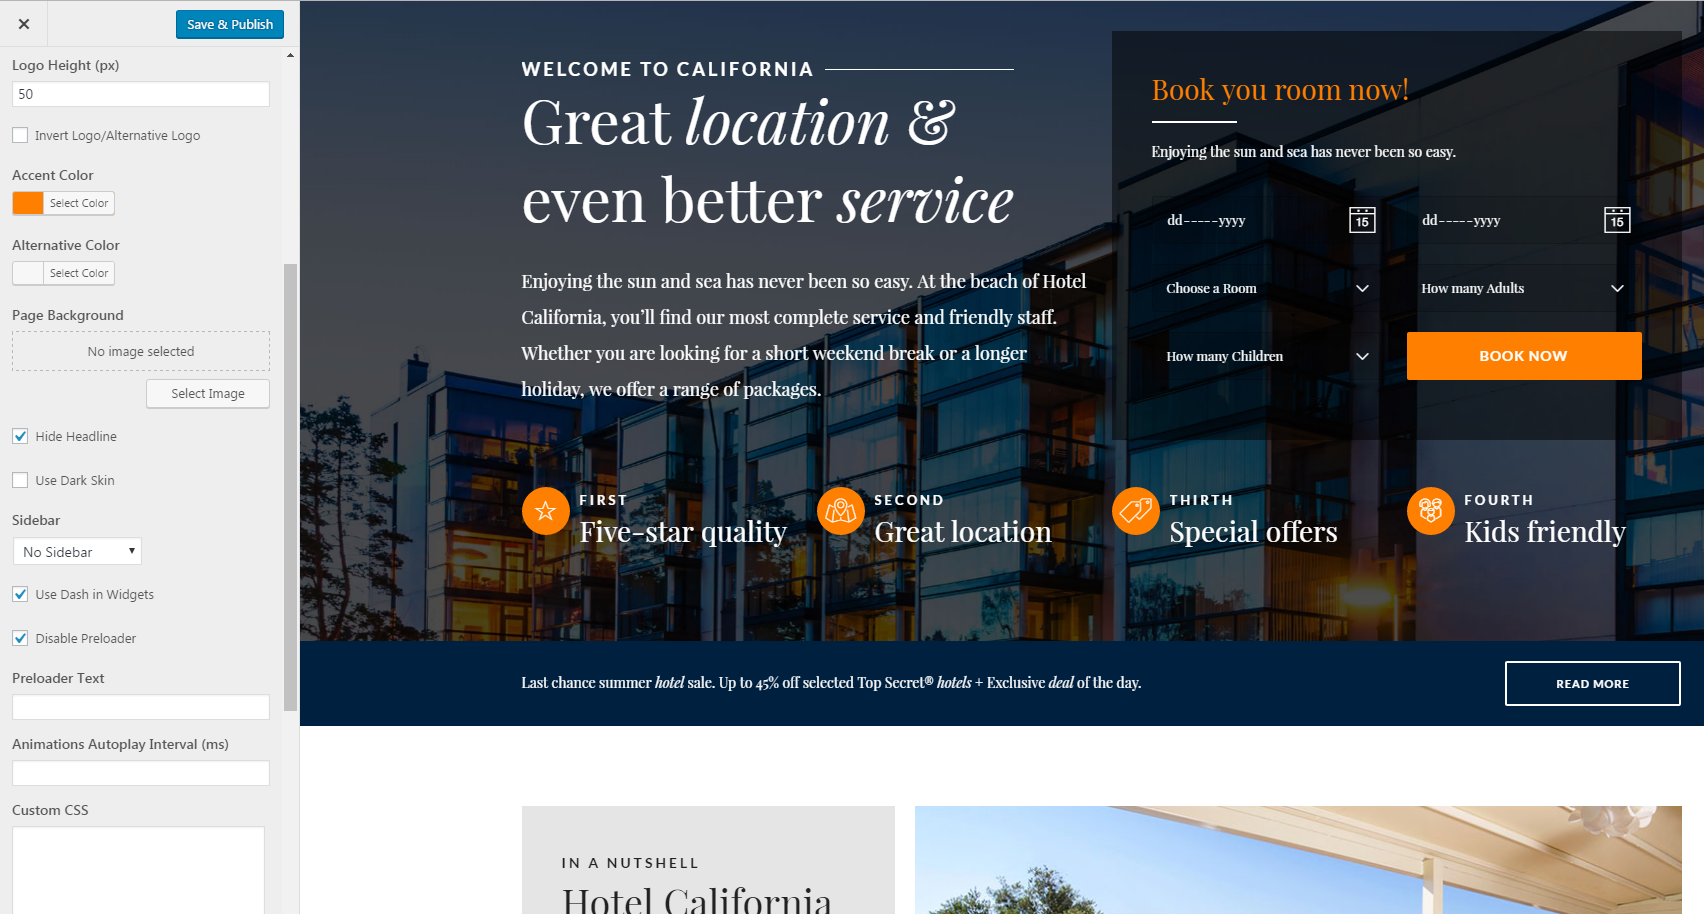 http://documentation.bold-themes.com/hotel/wp-content/uploads/sites/2/2016/10/13.png